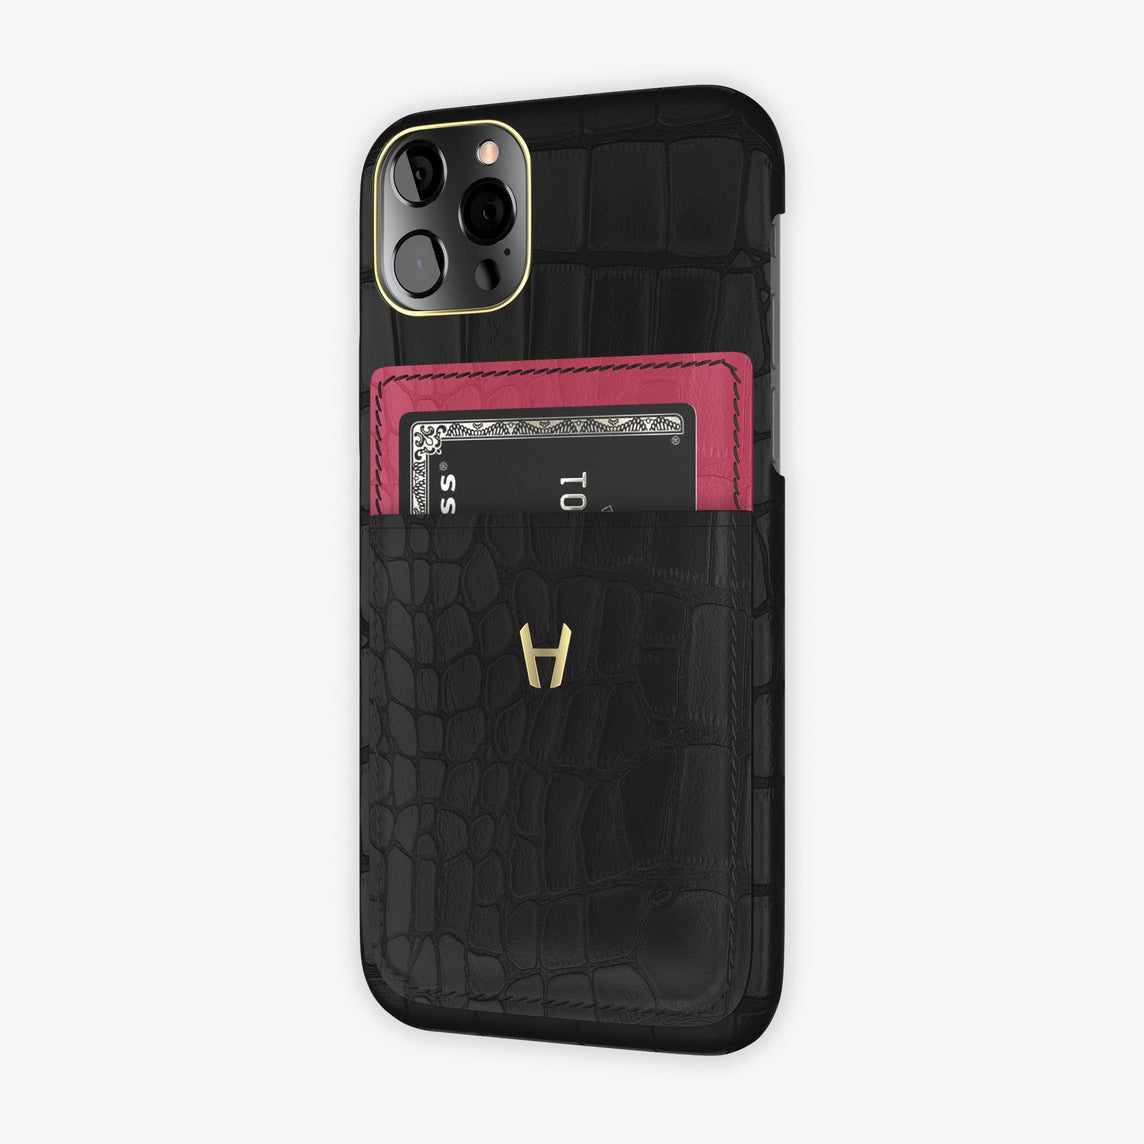 iPhone 12 & 12 Pro | Black/Pink Girly - Yellow Gold